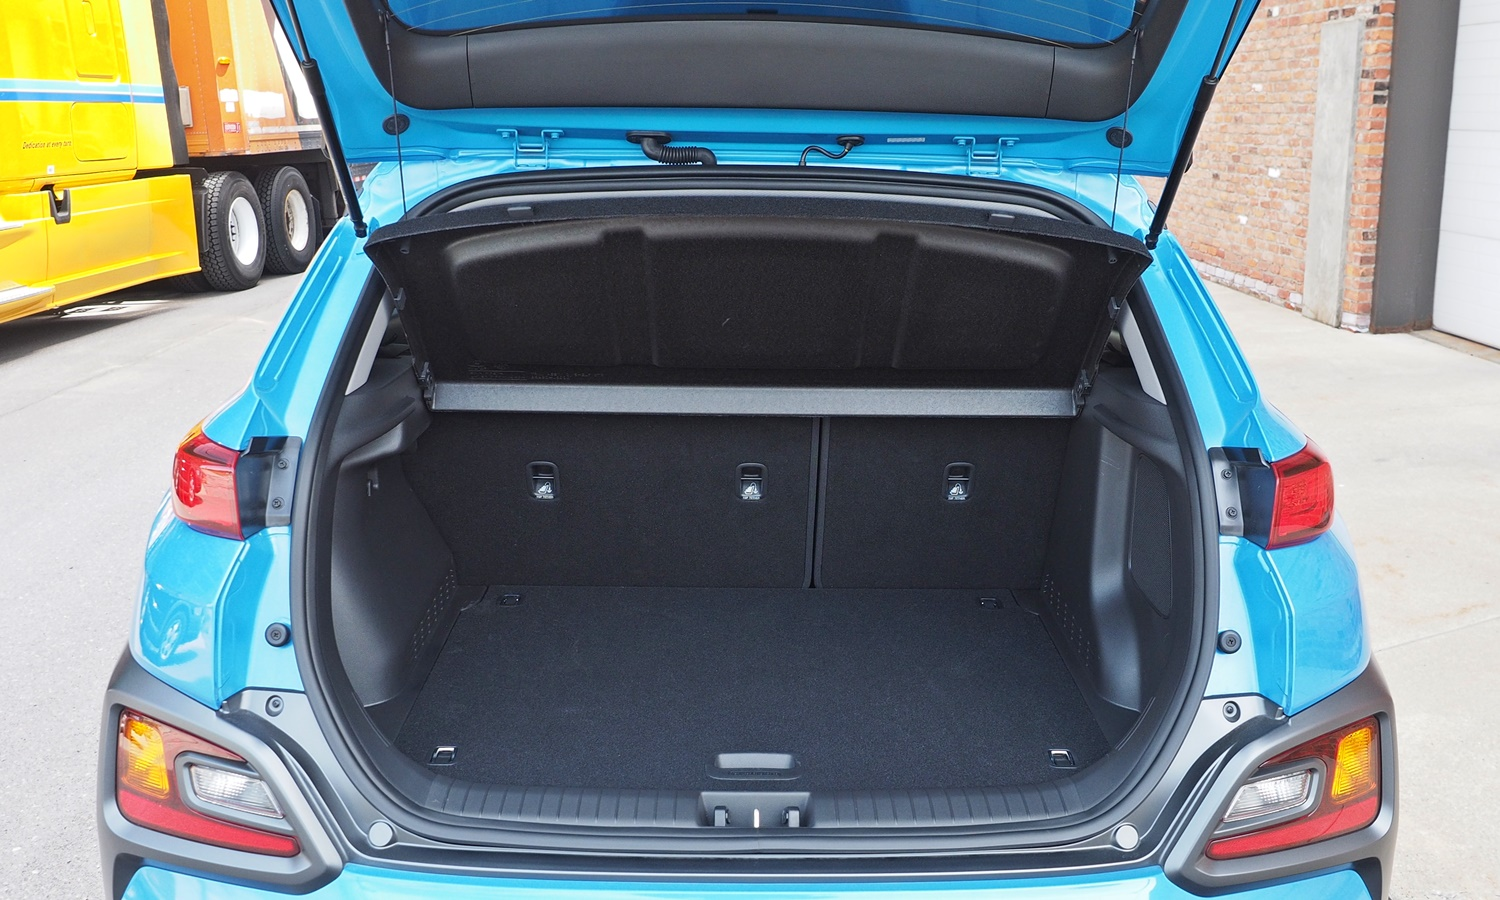 Kona Reviews: 2018 Hyundai Kona cargo area